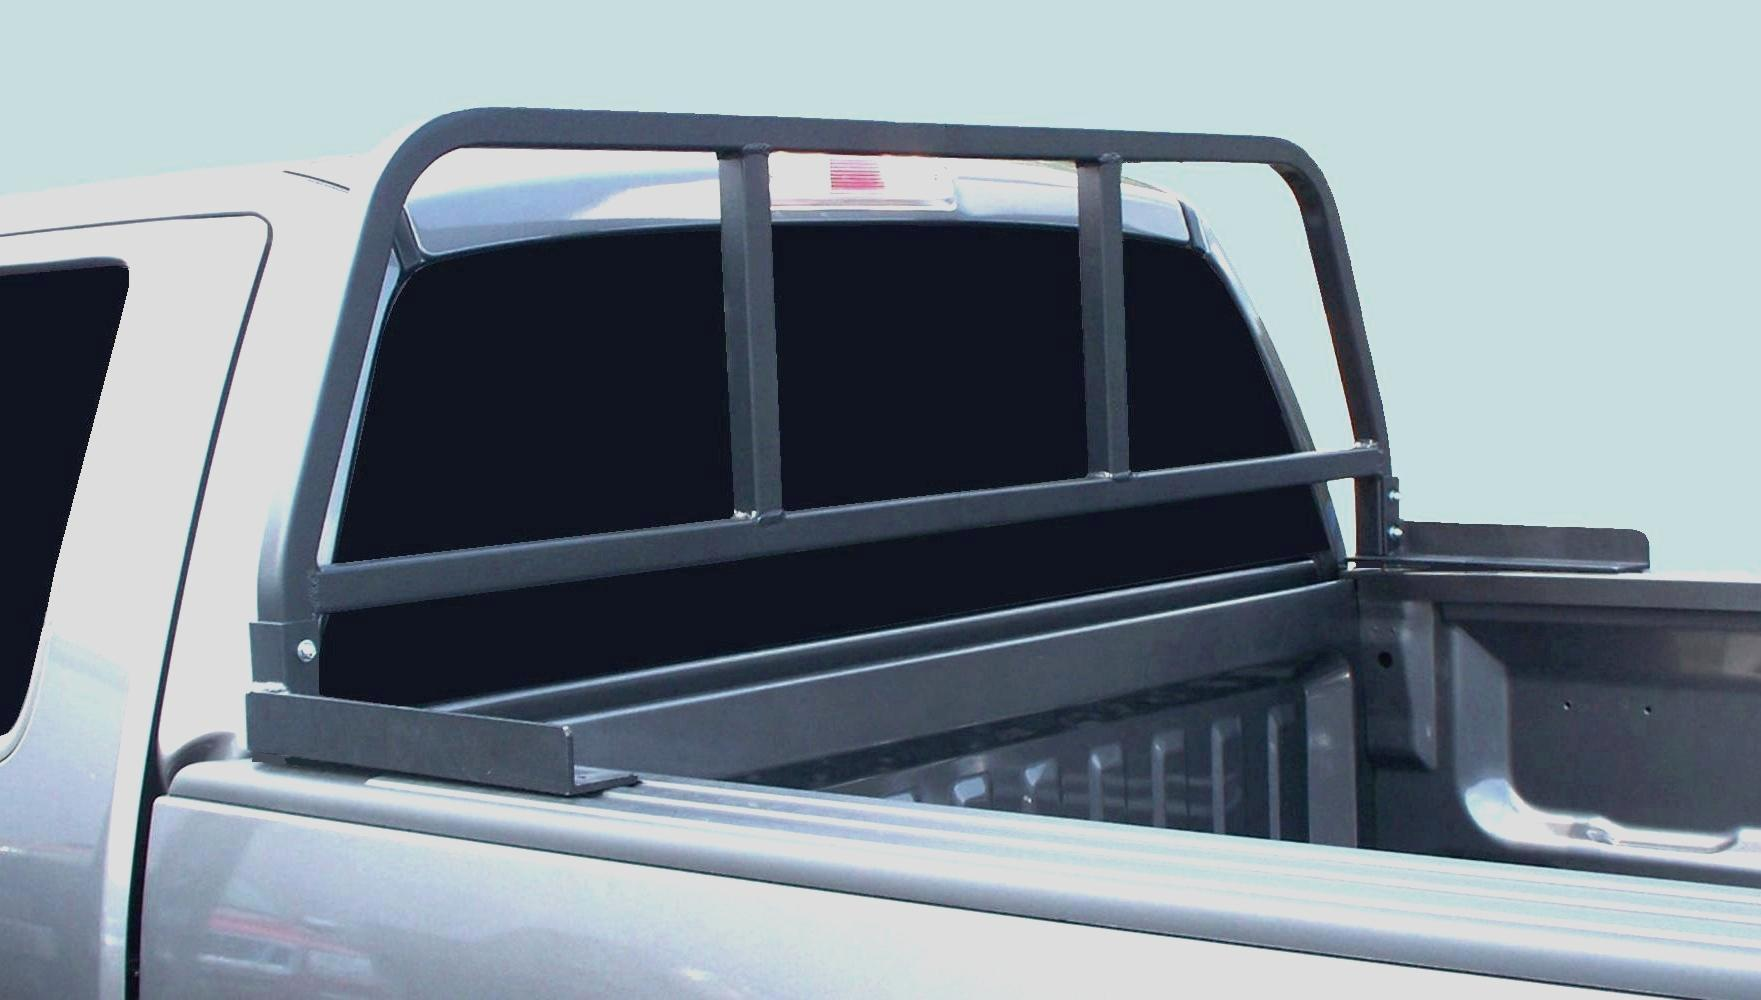 Rugged Rack Truck Cab Protector